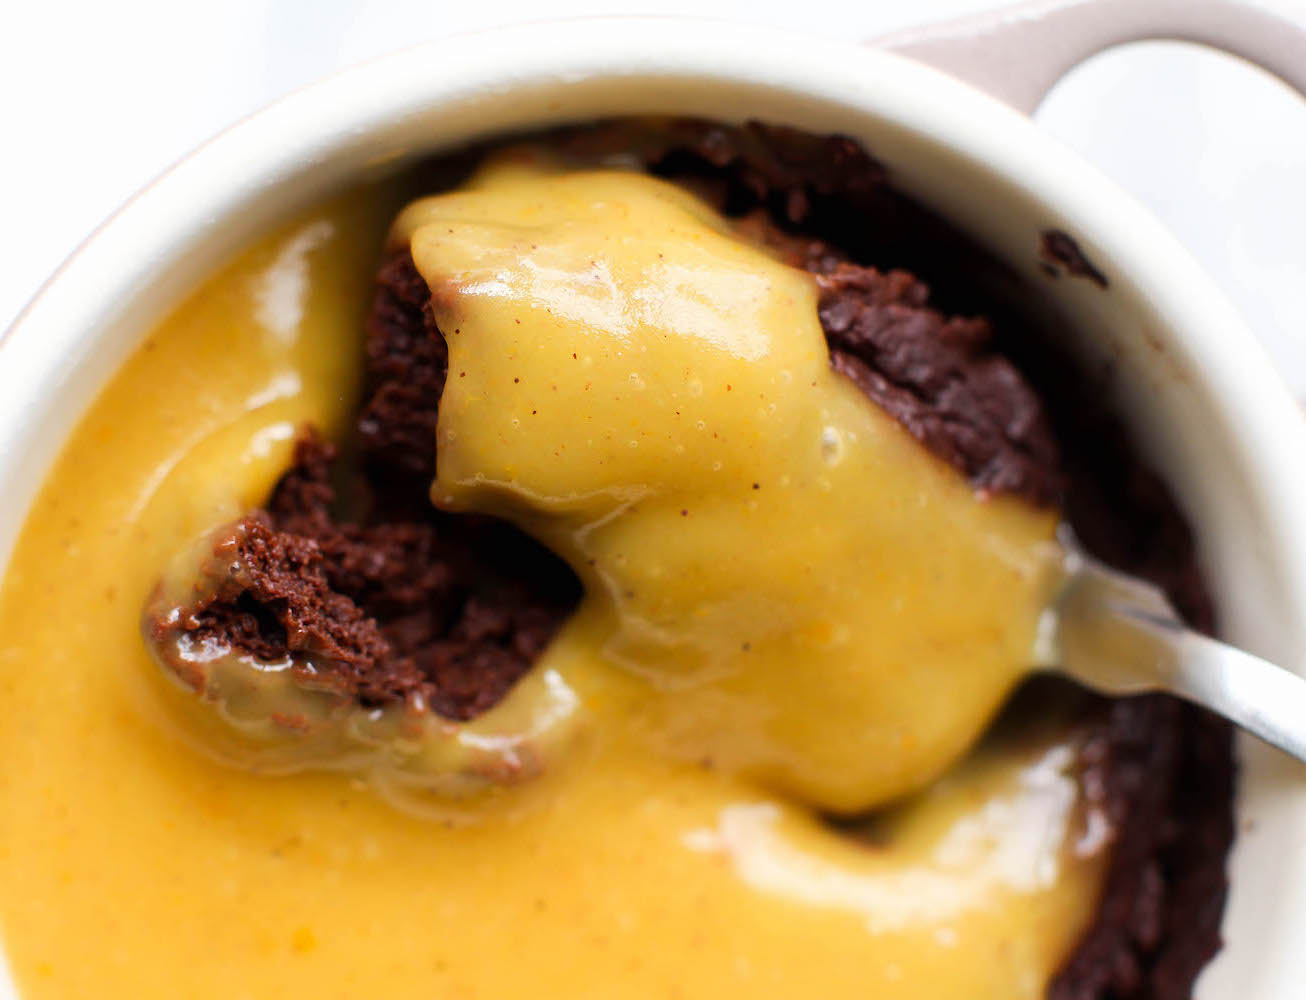 Chocolate Flourless Mug Cake with Pumpkin Spice Custard